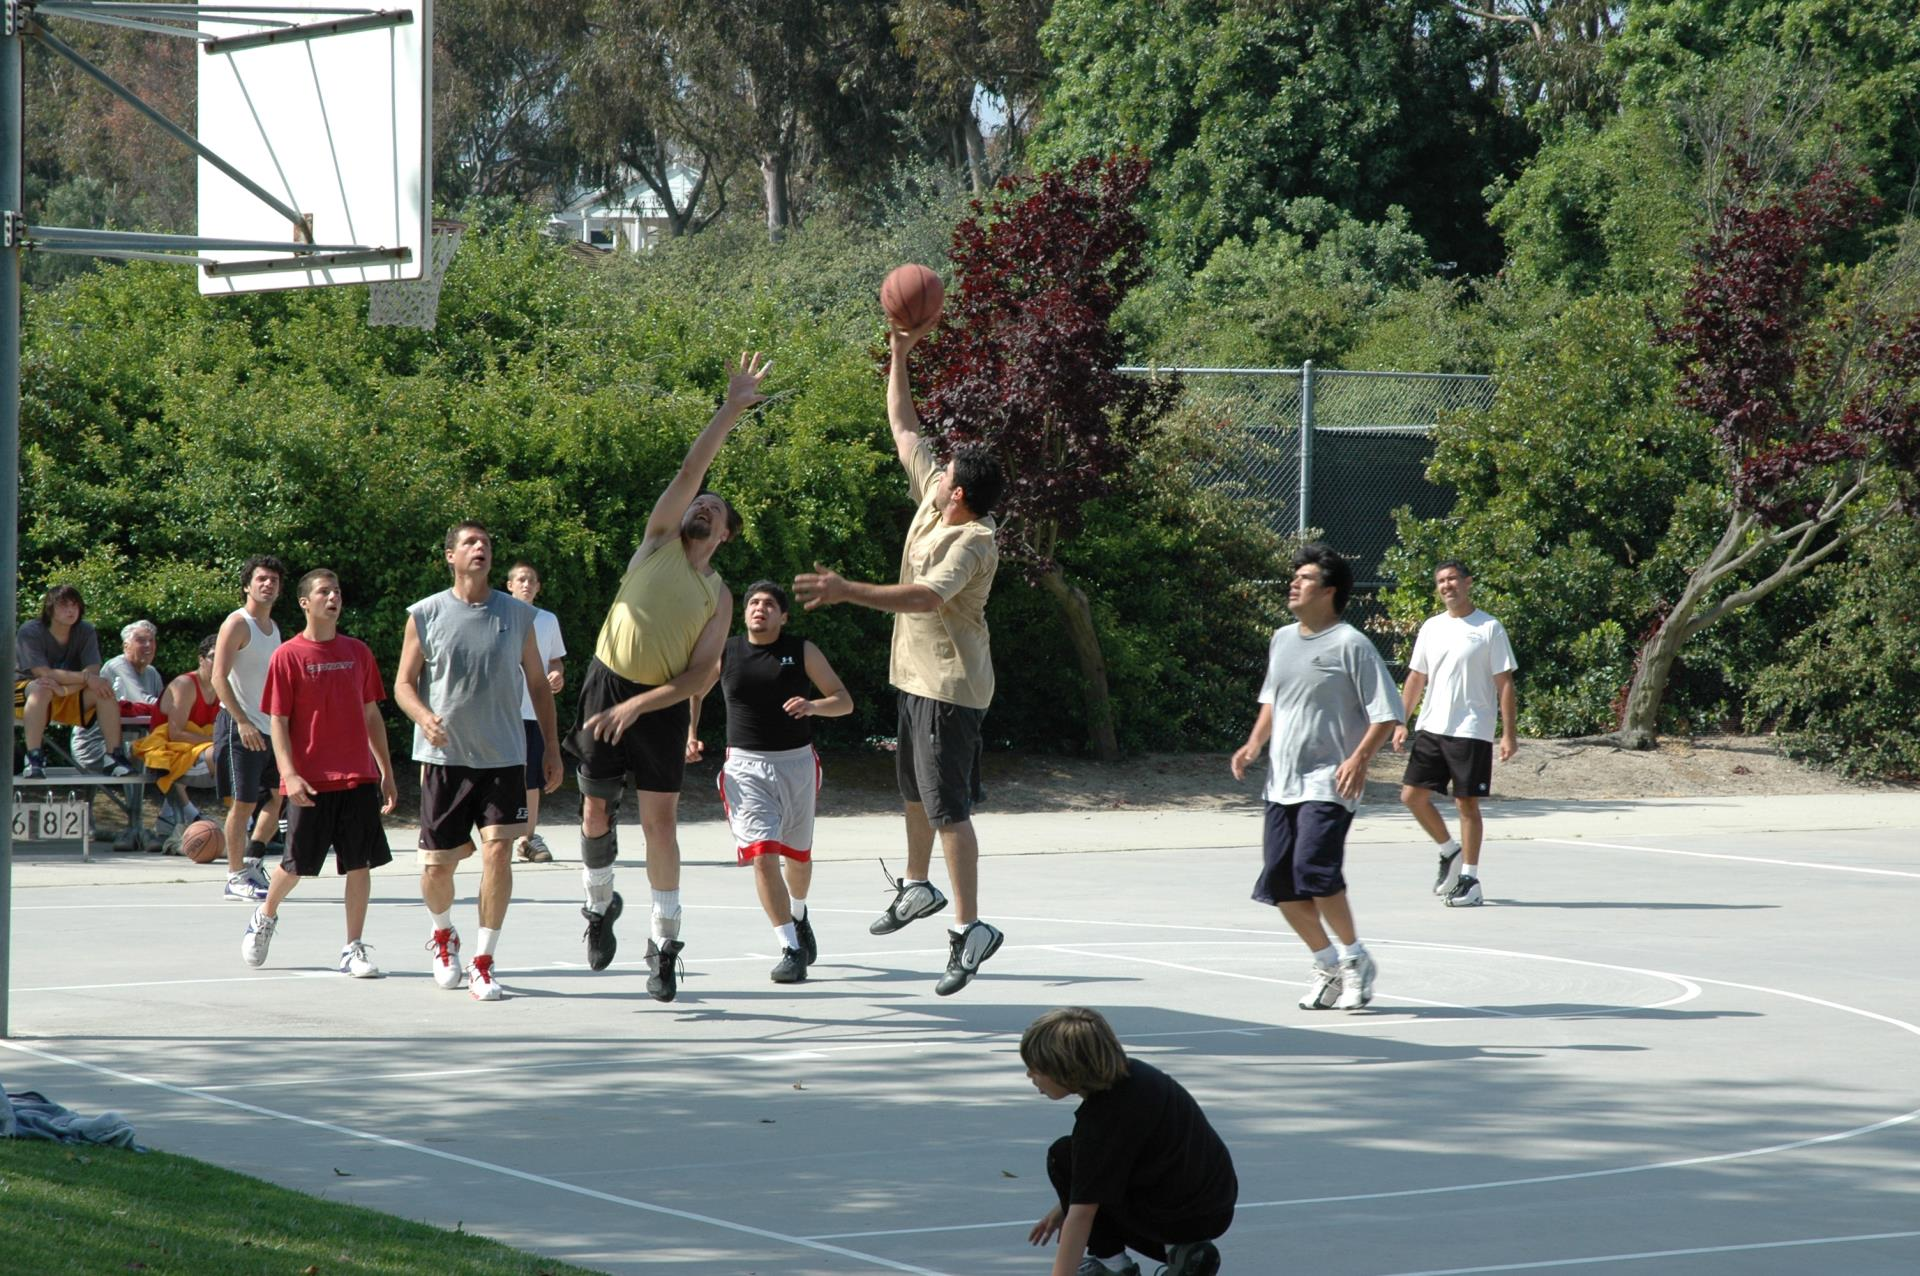 A group is playing basketball at Ernie Howlett Park